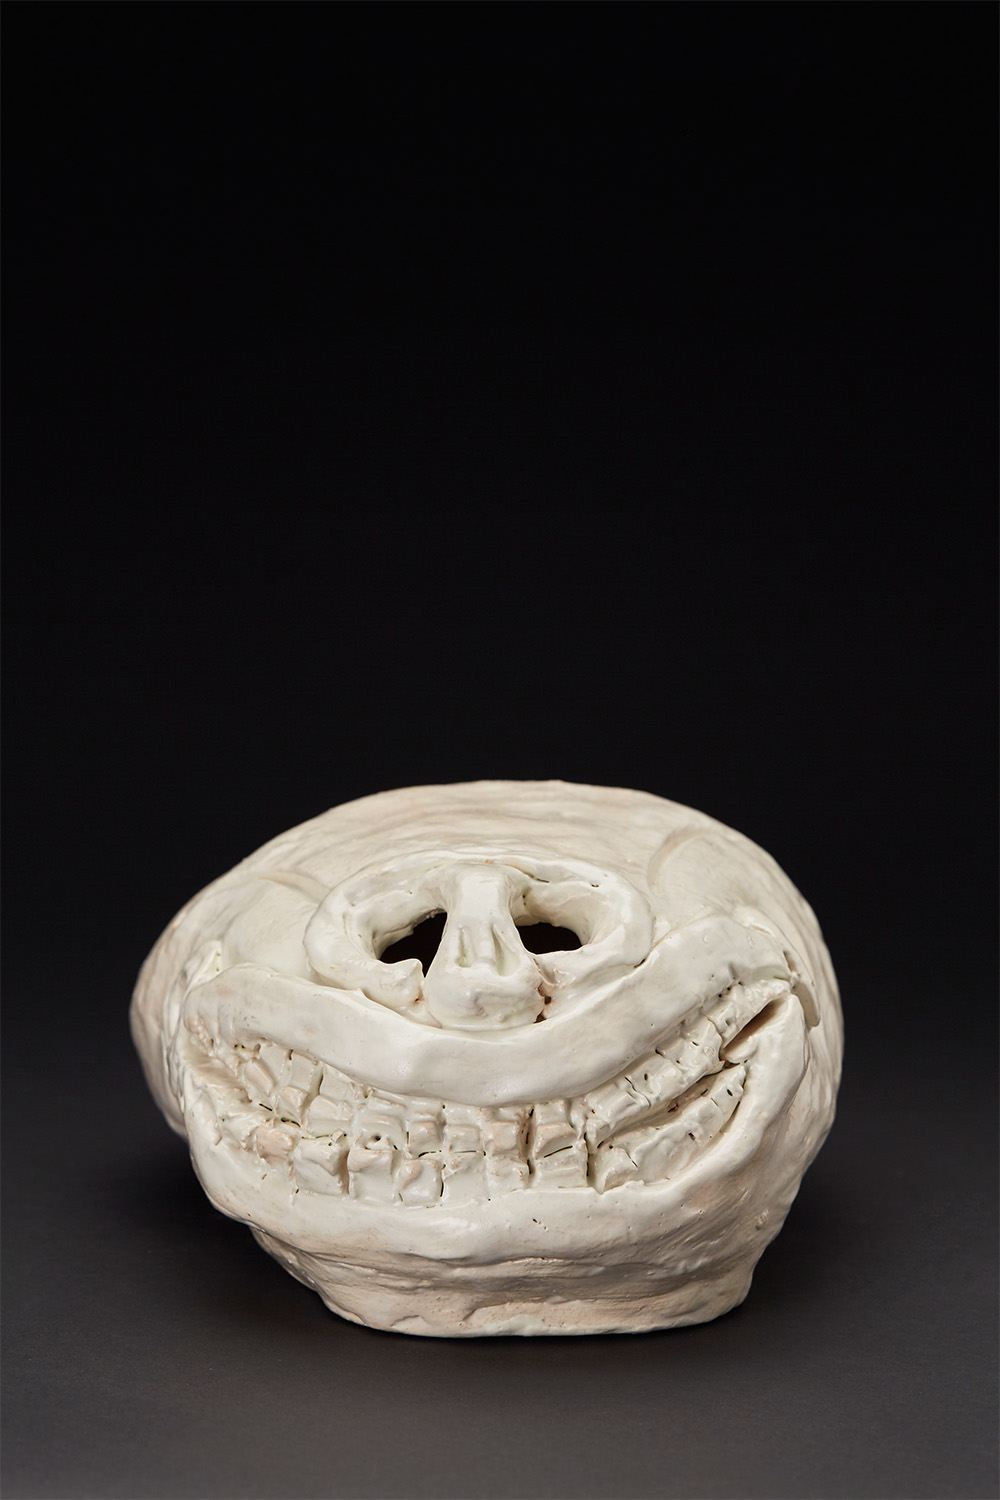 Ricardo Estella    Skull I  , 2013 Glazed ceramic 6 x 10.25 x 8 inches 15.2 x 26 x 20.3 cm REs 1